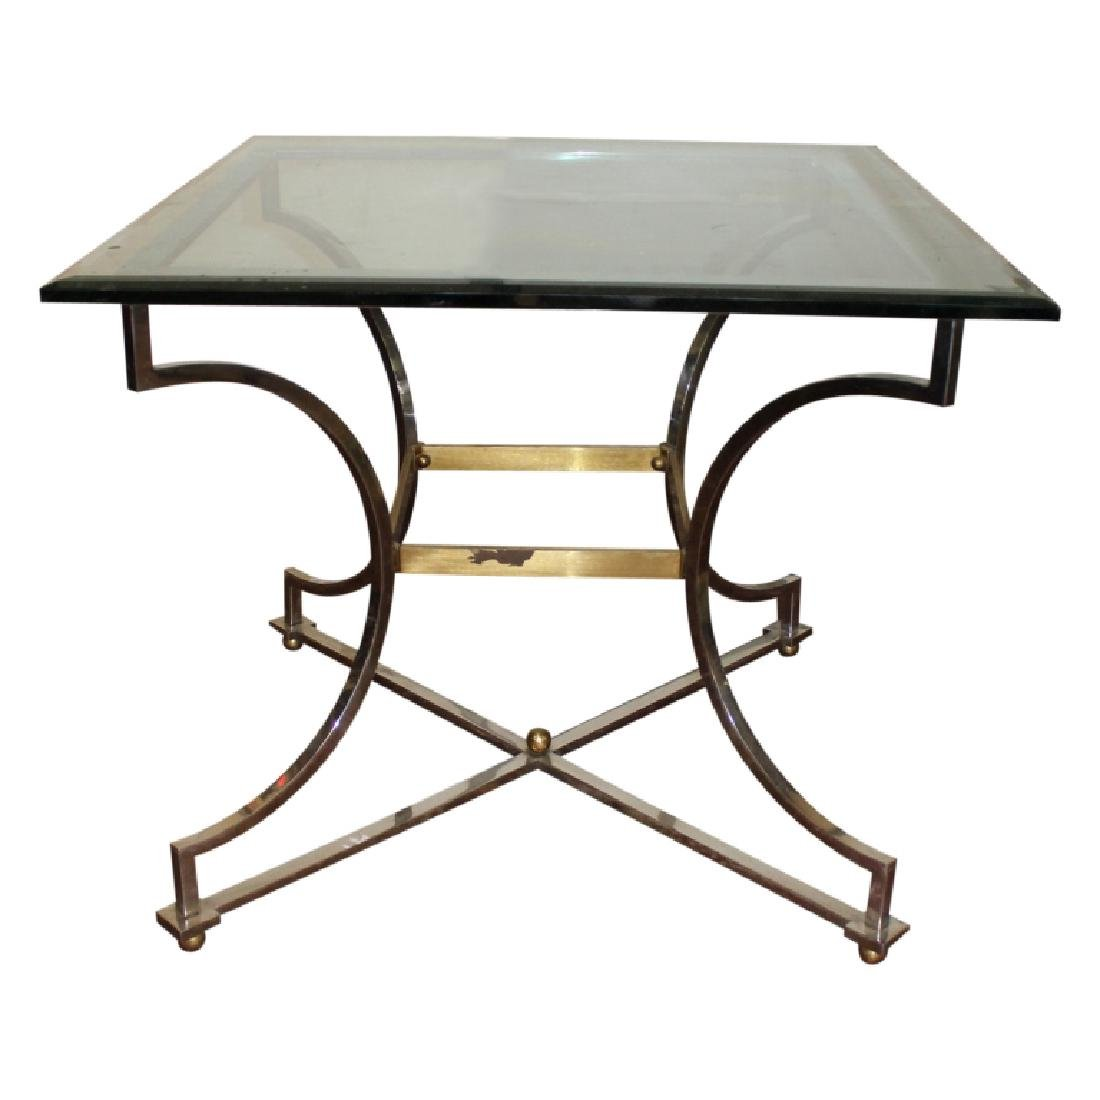 Silver and Gold Frame Double Bevel Glass Top Table